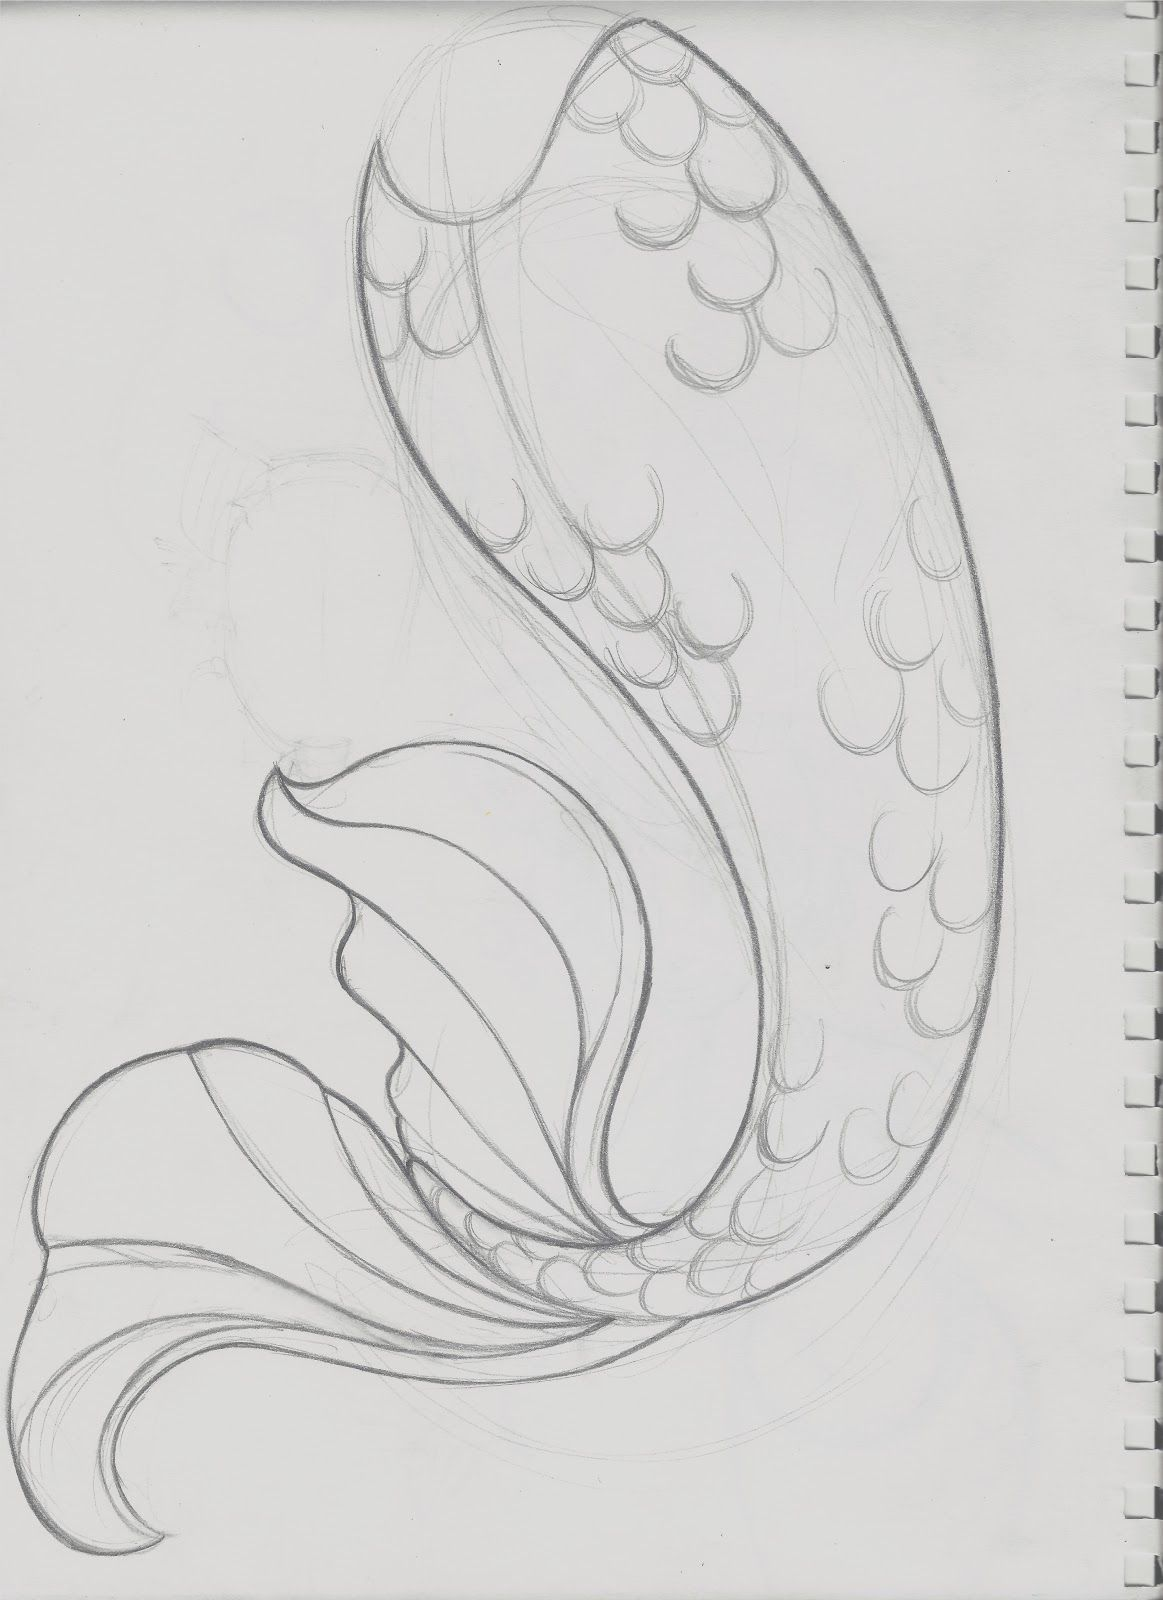 mermaid outline template | After having scanned the image, I aligned ...